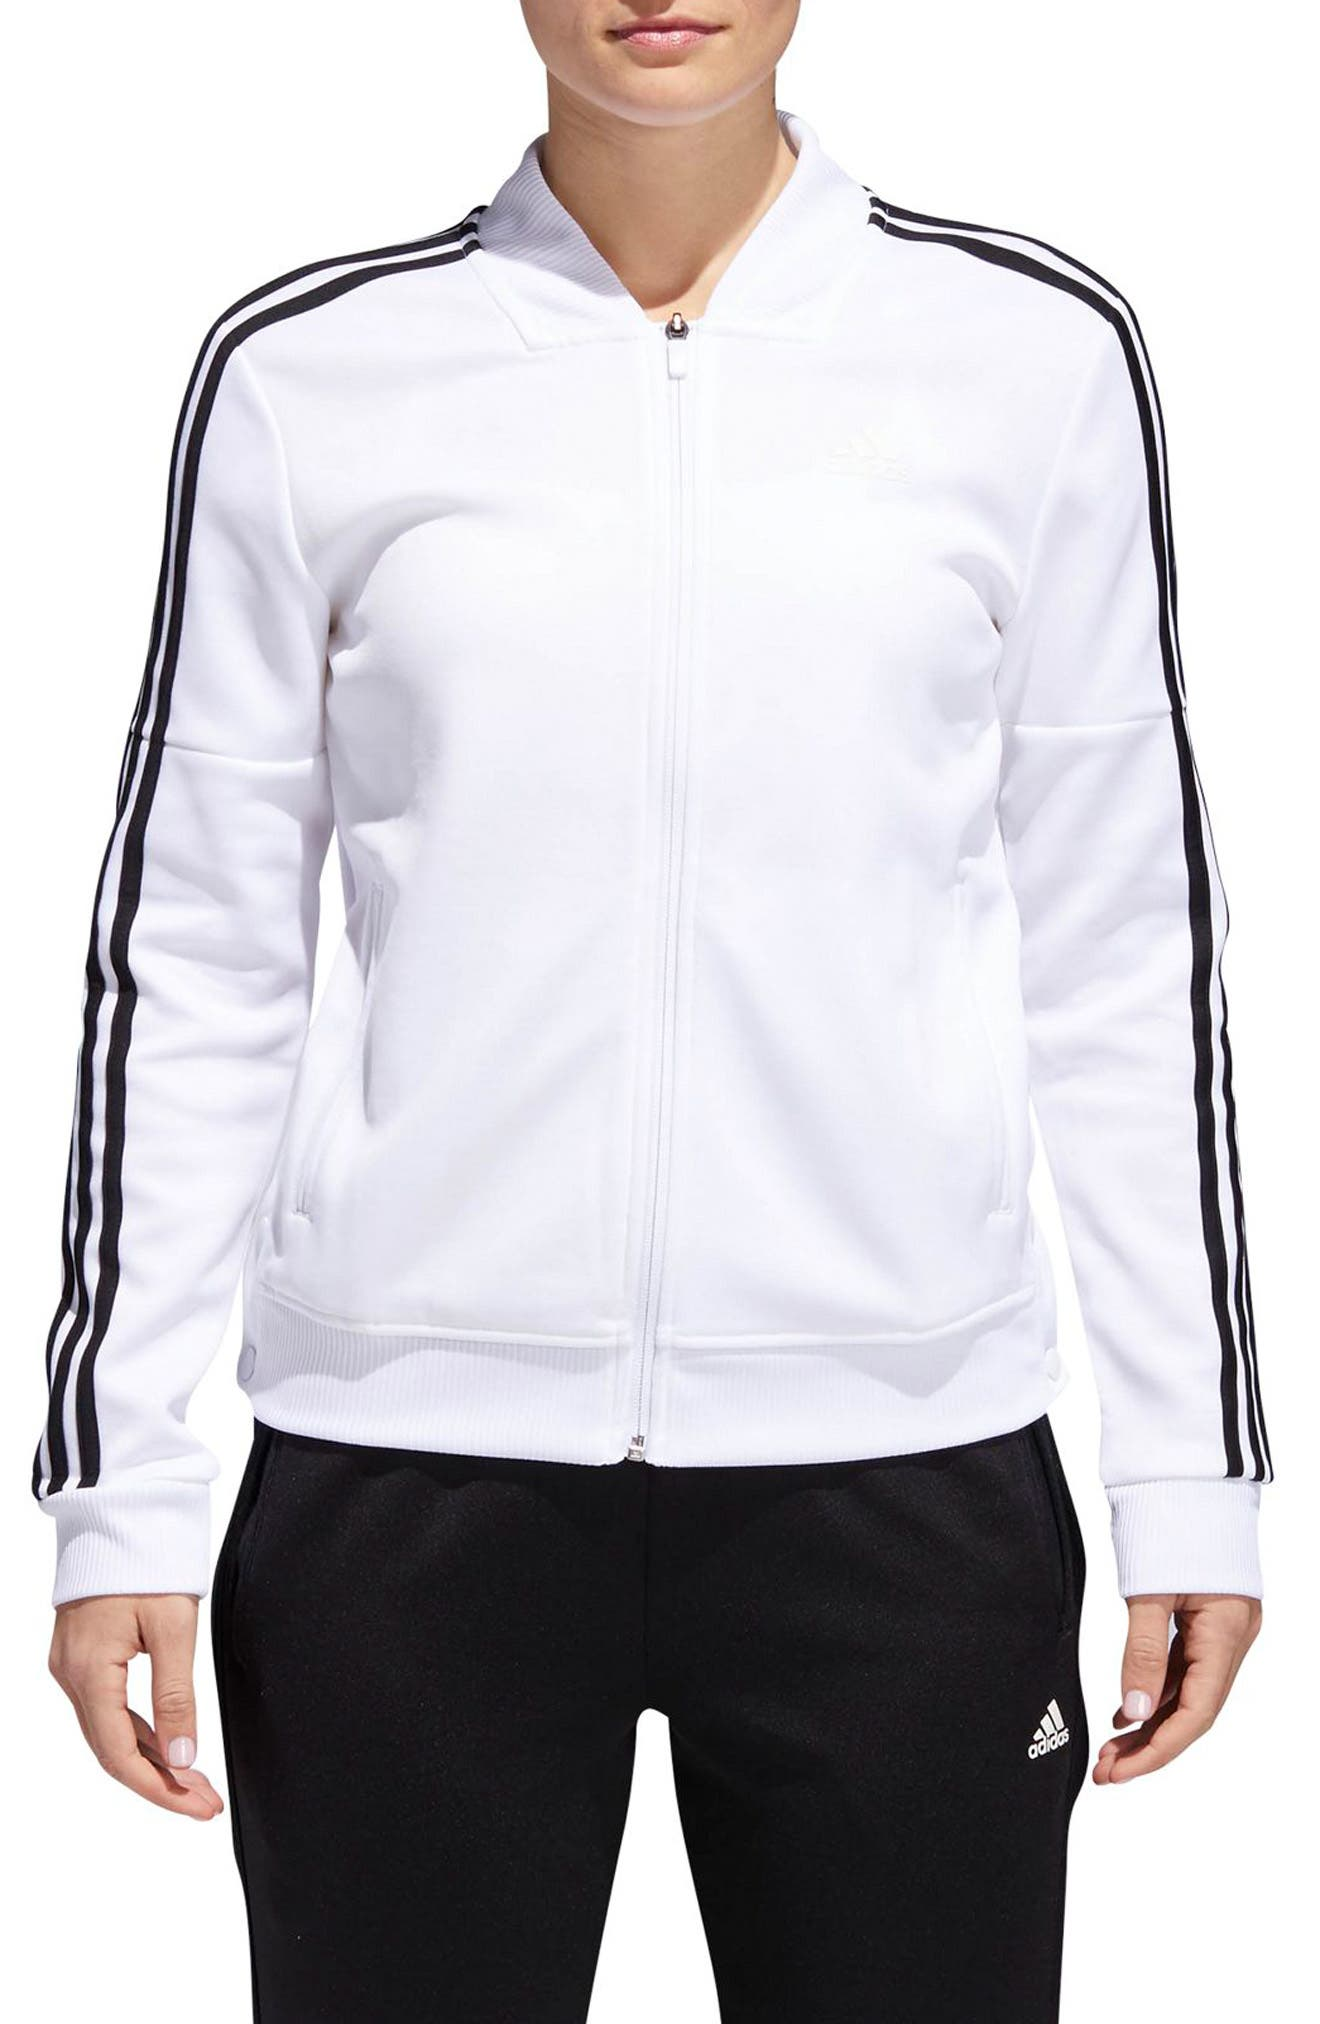 Tricot Snap It Track Jacket,                         Main,                         color, White/ Black